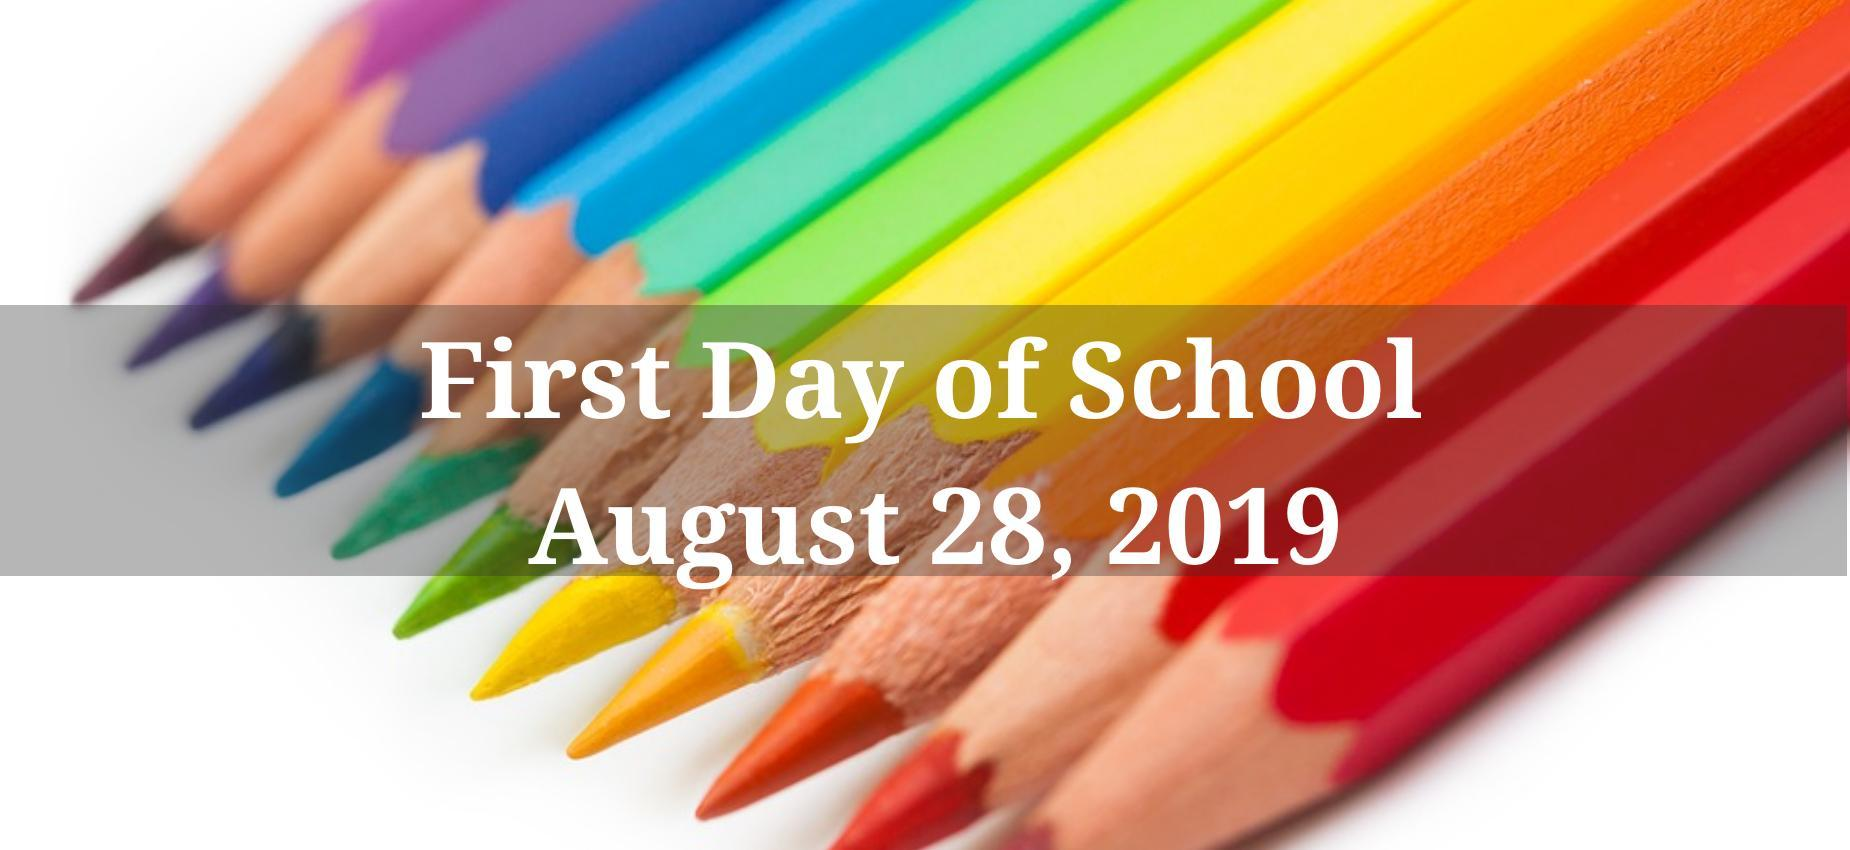 image, first day of school